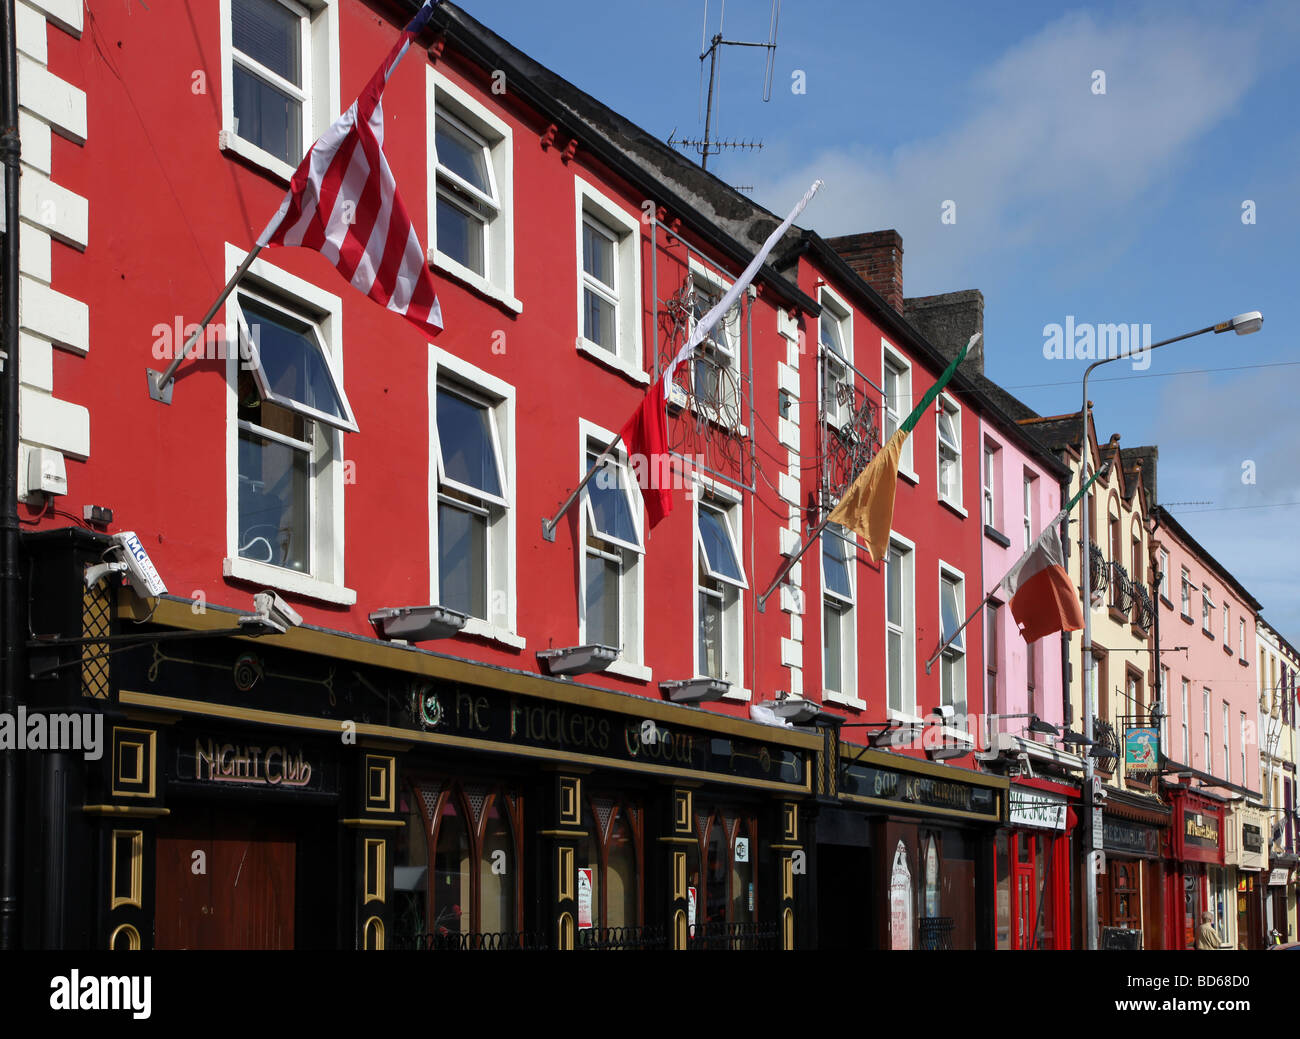 Carrickmacross Main Street coloured shop fronts - Stock Image